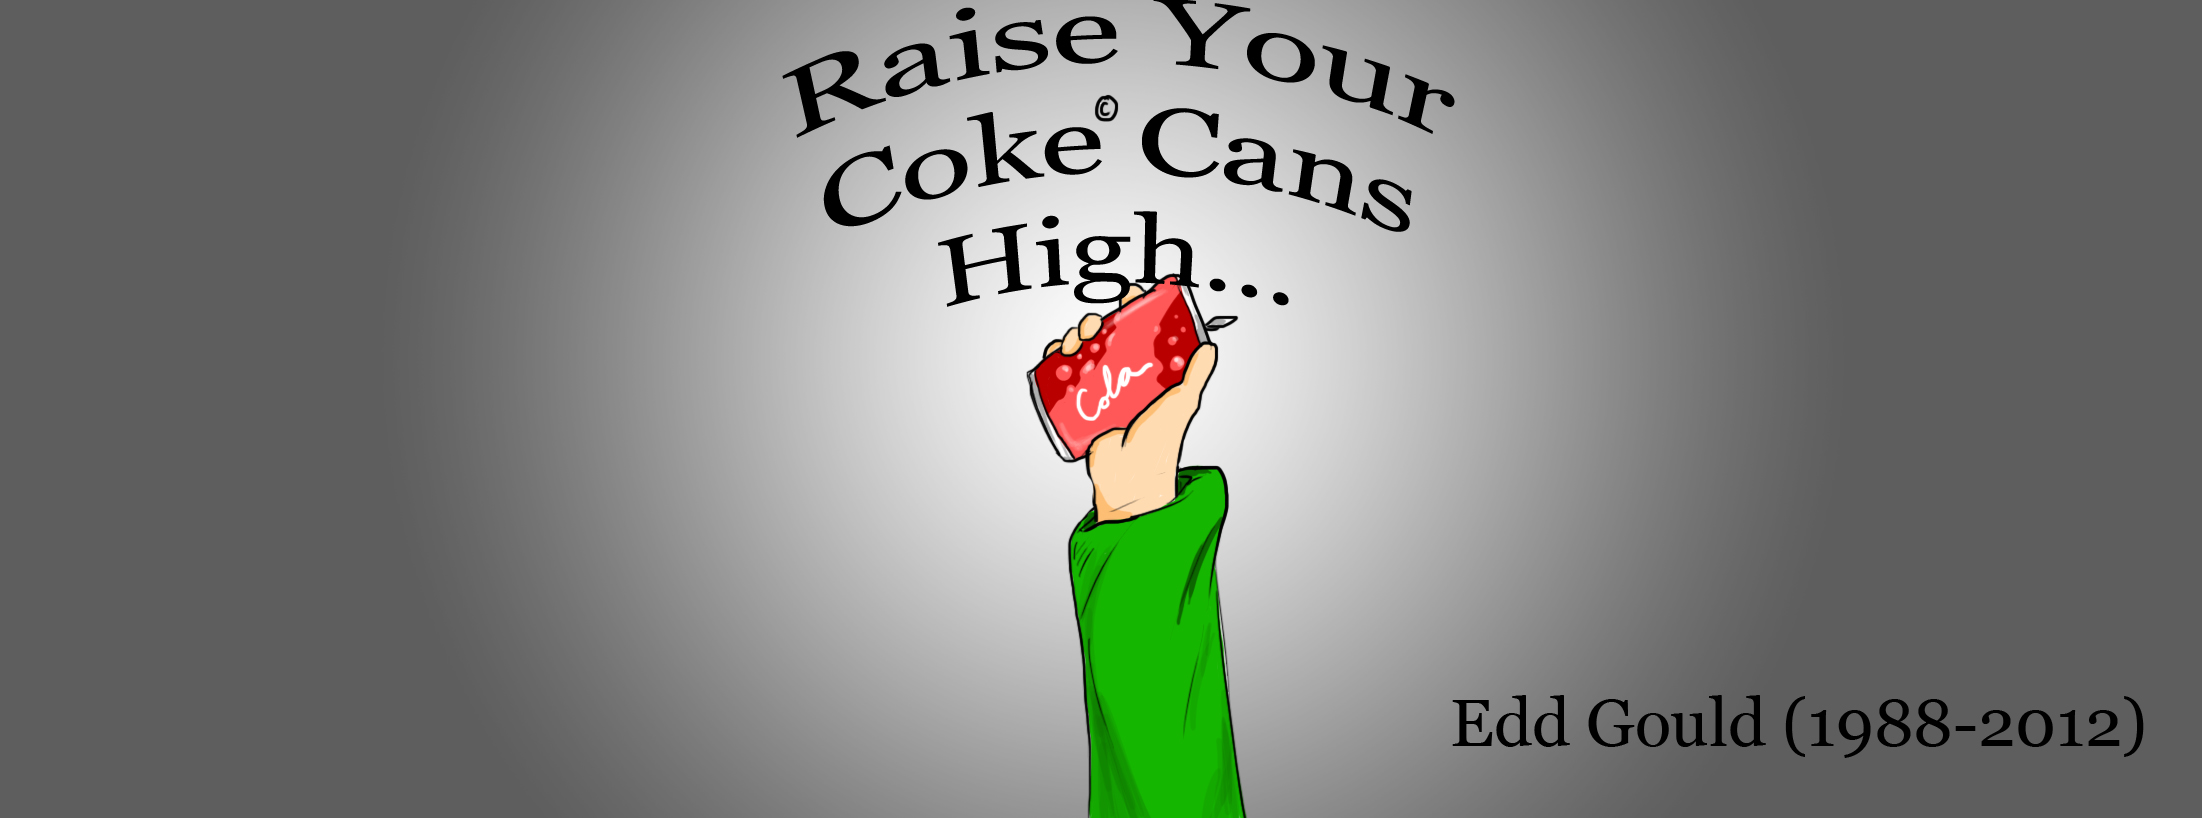 Raise Your Coke Cans High